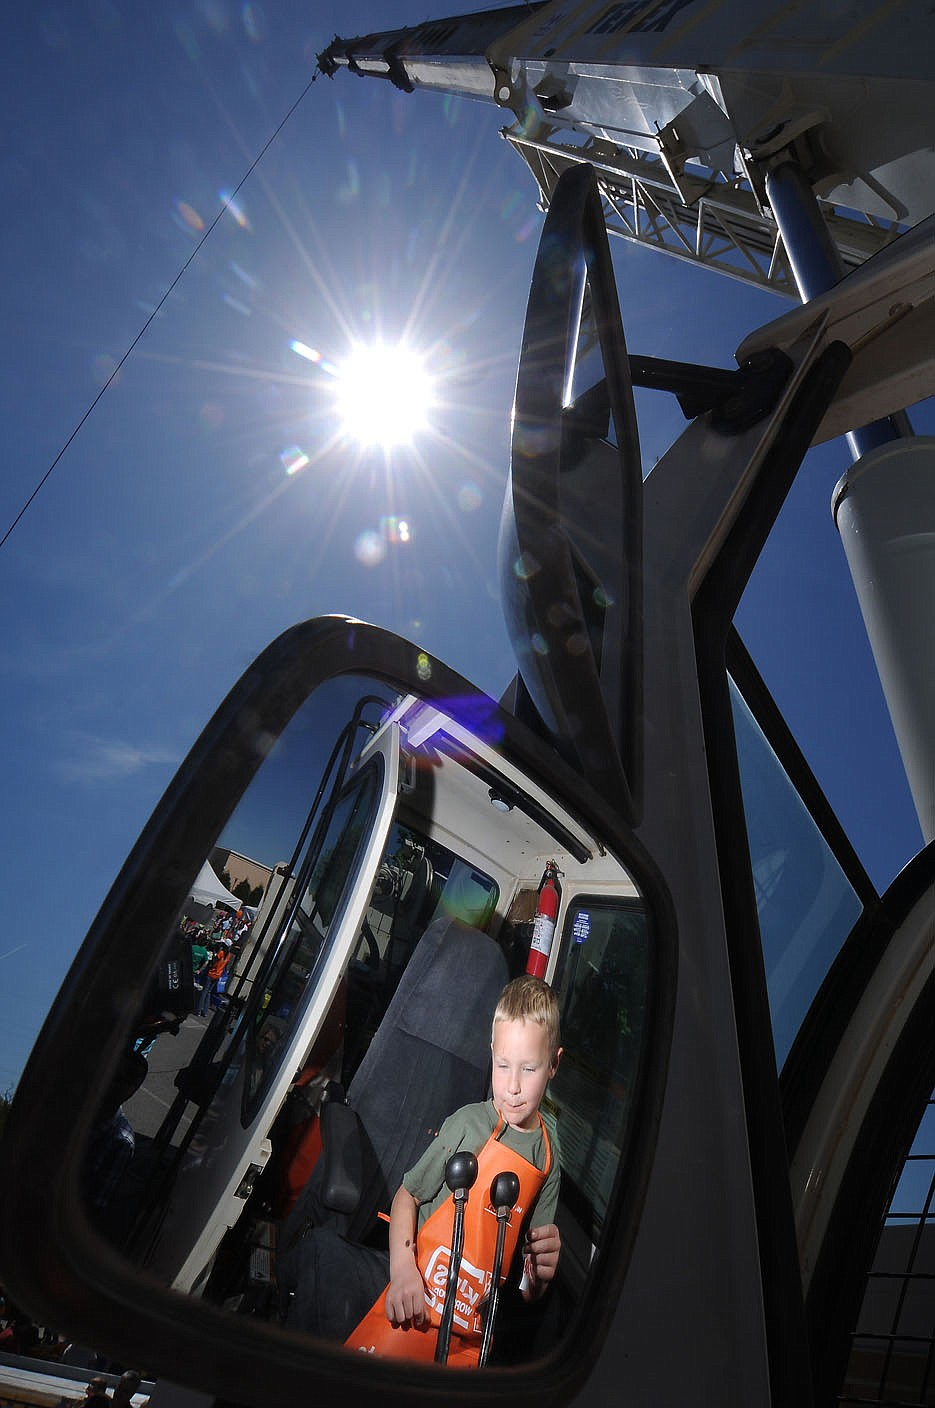 STAFF PHOTO BEN GOFF -- 05/03/14 - Aaron Fletcher, 5, of Rogers, explores the controls of a Nabholz 60-Ton Terex crane, as reflected in one of the crane's rear-view mirrors, during the 8th Annual Junior League of Northwest Arkansas Touch a Truck event at Pinnacle Hills Promenade mall in Rogers on Saturday May 3, 2014.